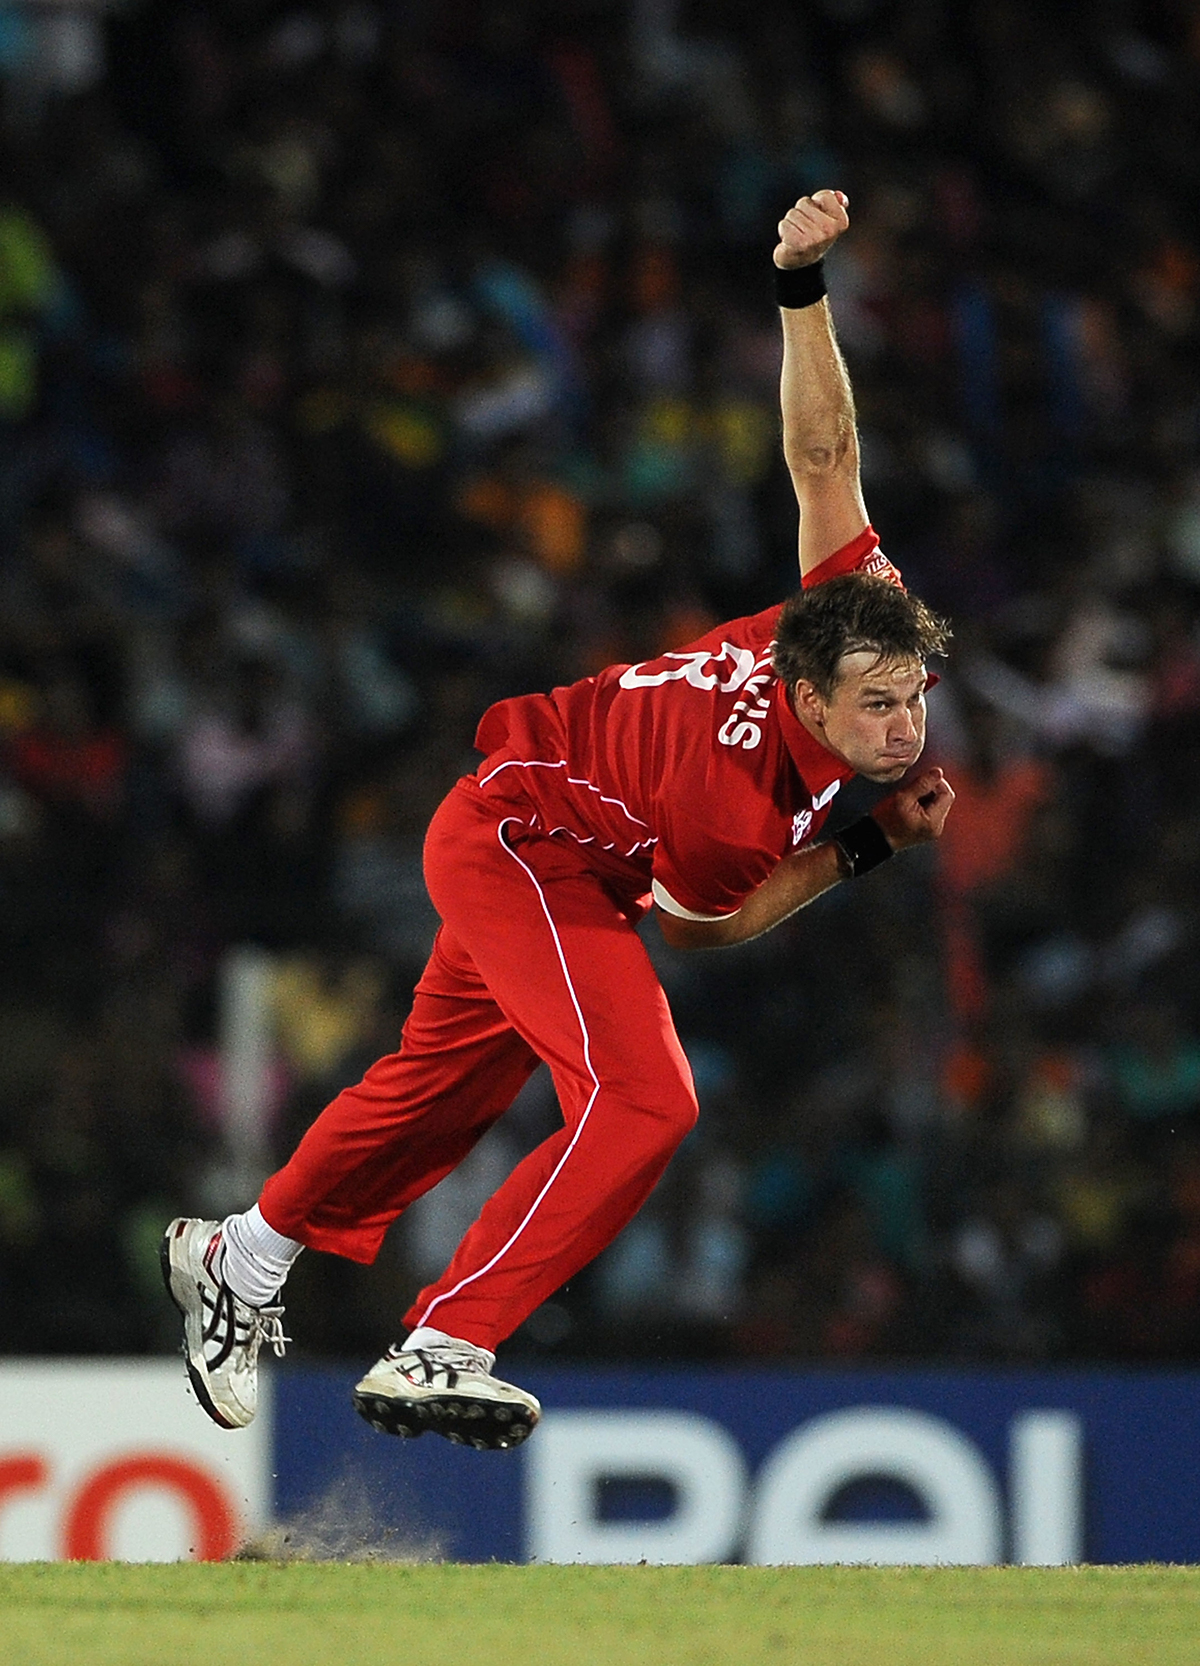 Jarvis called time on his cricket career in June this year at the age of 32 after struggling with injury and illness.